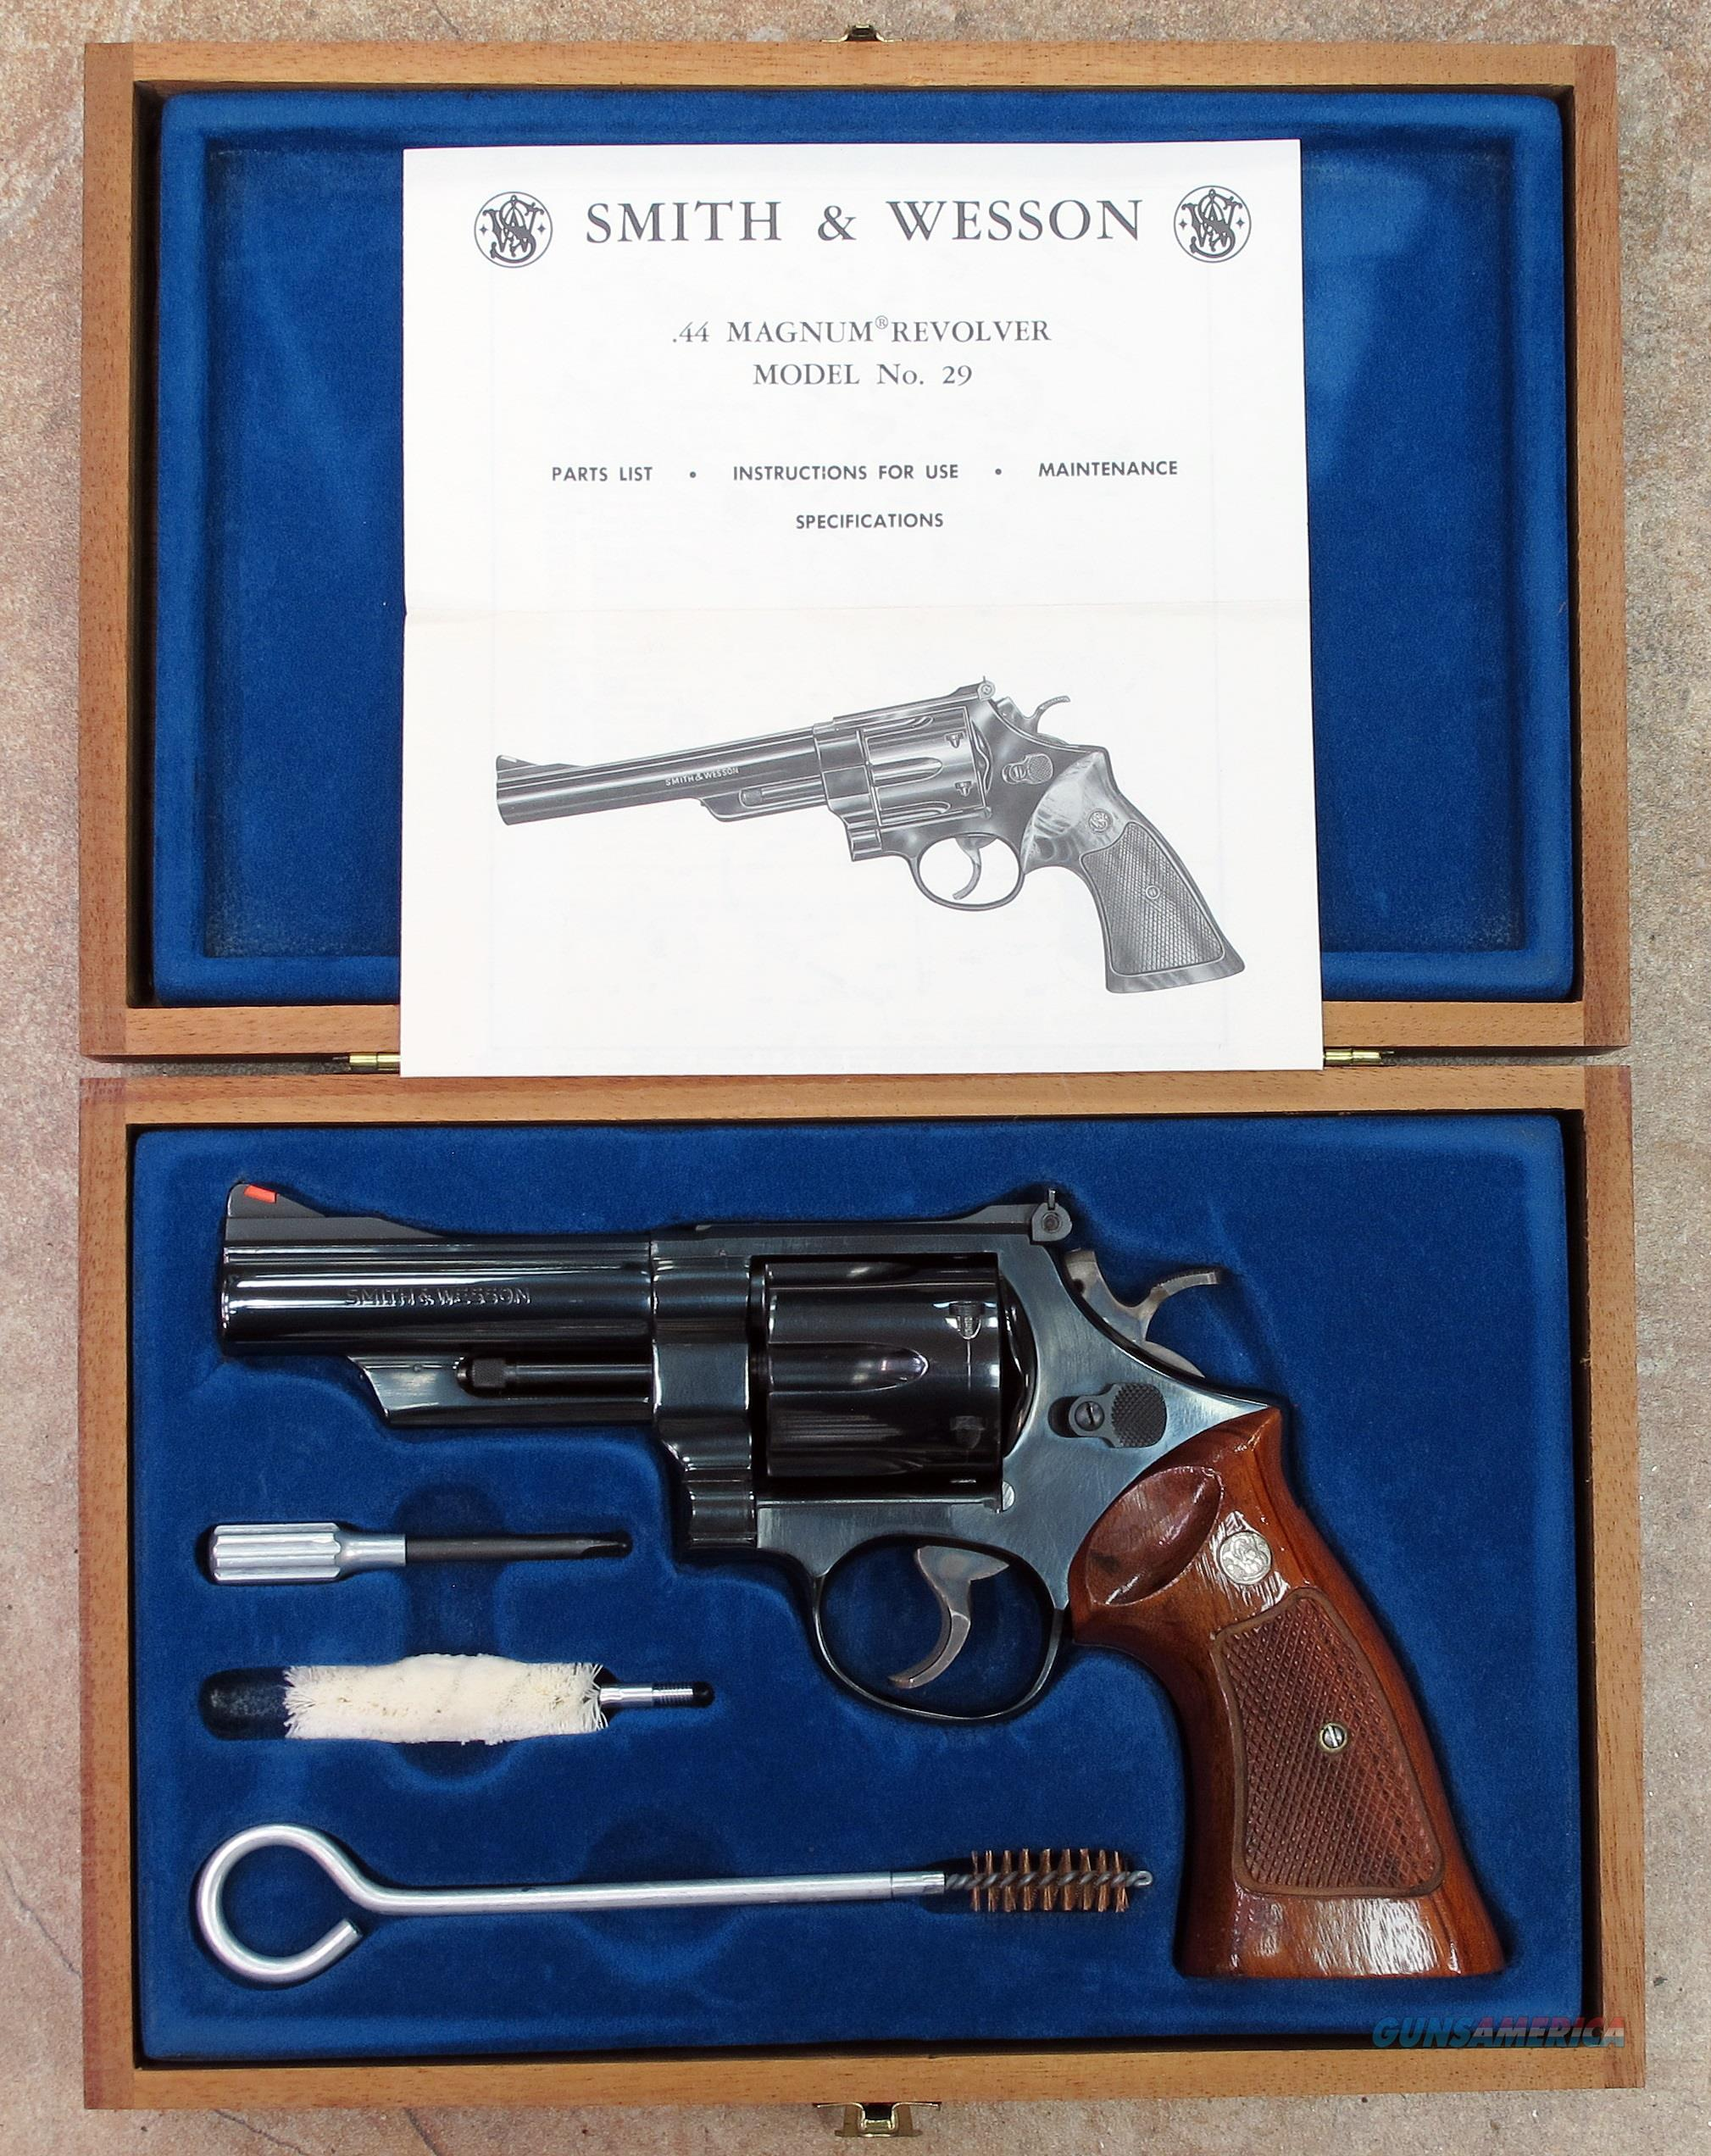 SMITH & WESSON 29-2 44 MAGNUM  Guns > Pistols > Smith & Wesson Revolvers > Full Frame Revolver